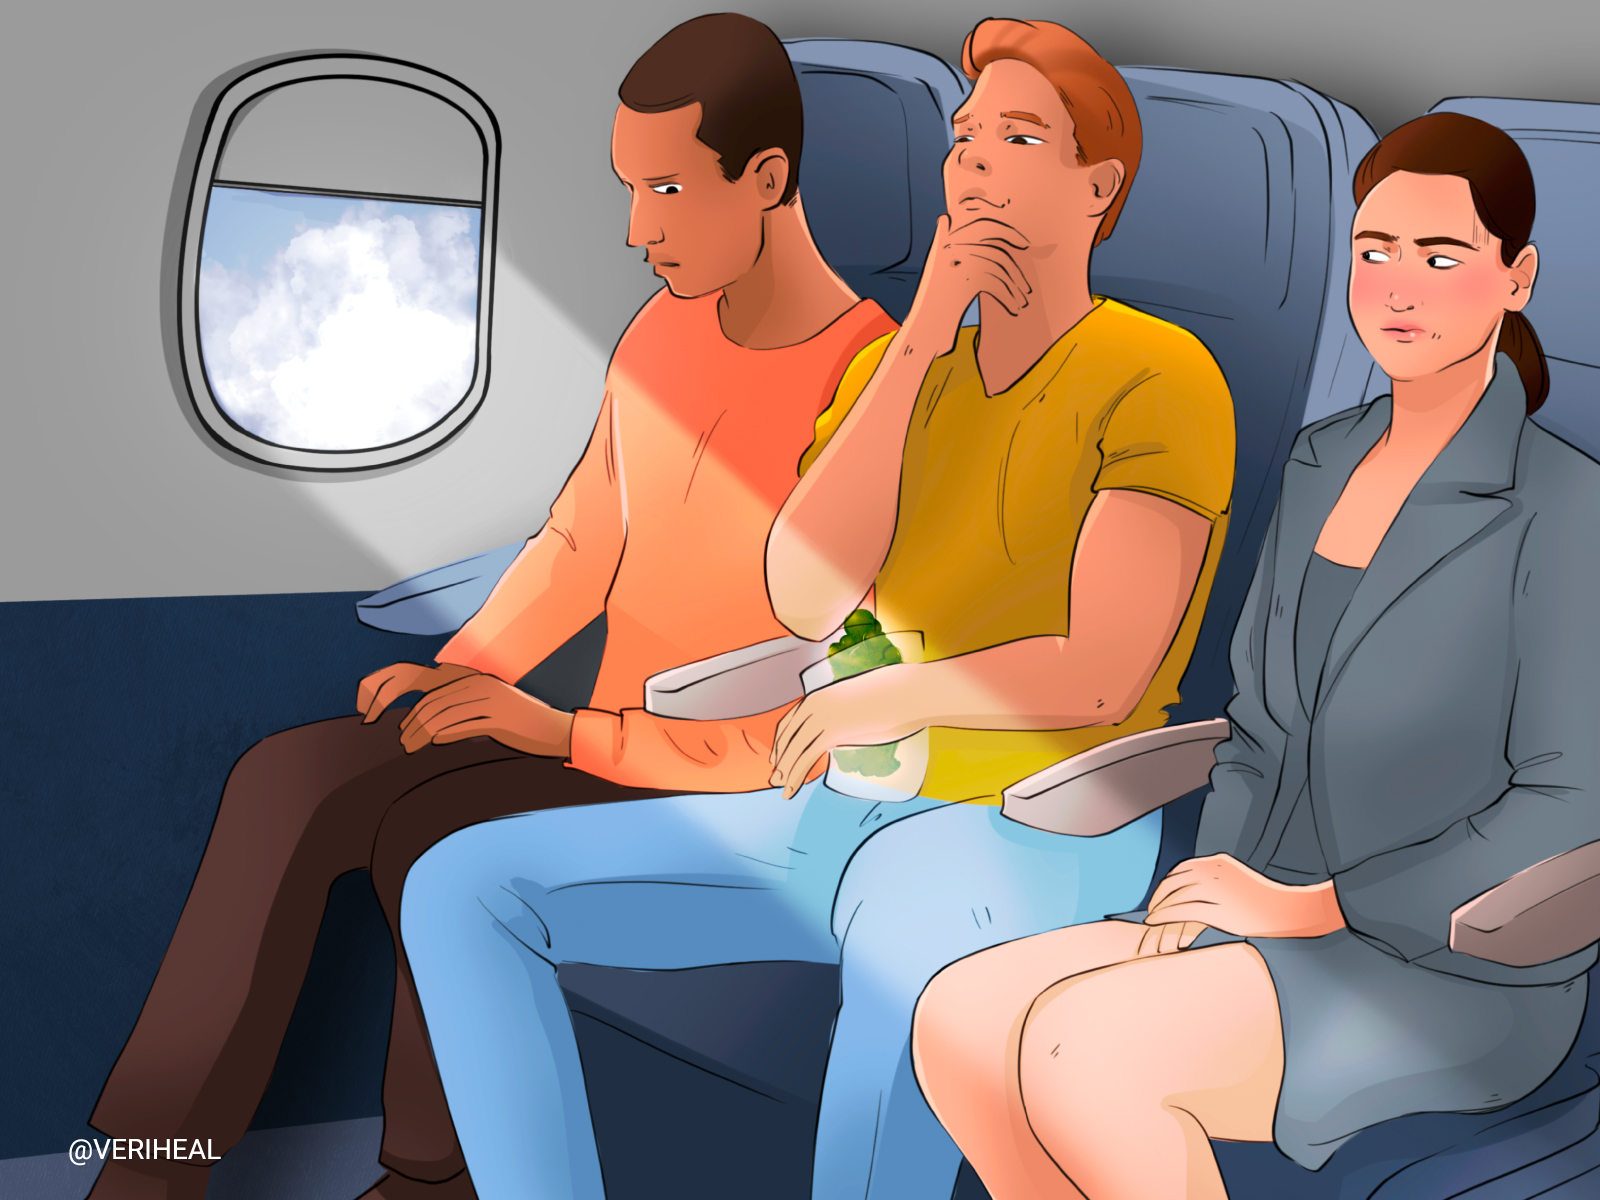 What You Need to Know About Flying With Cannabis